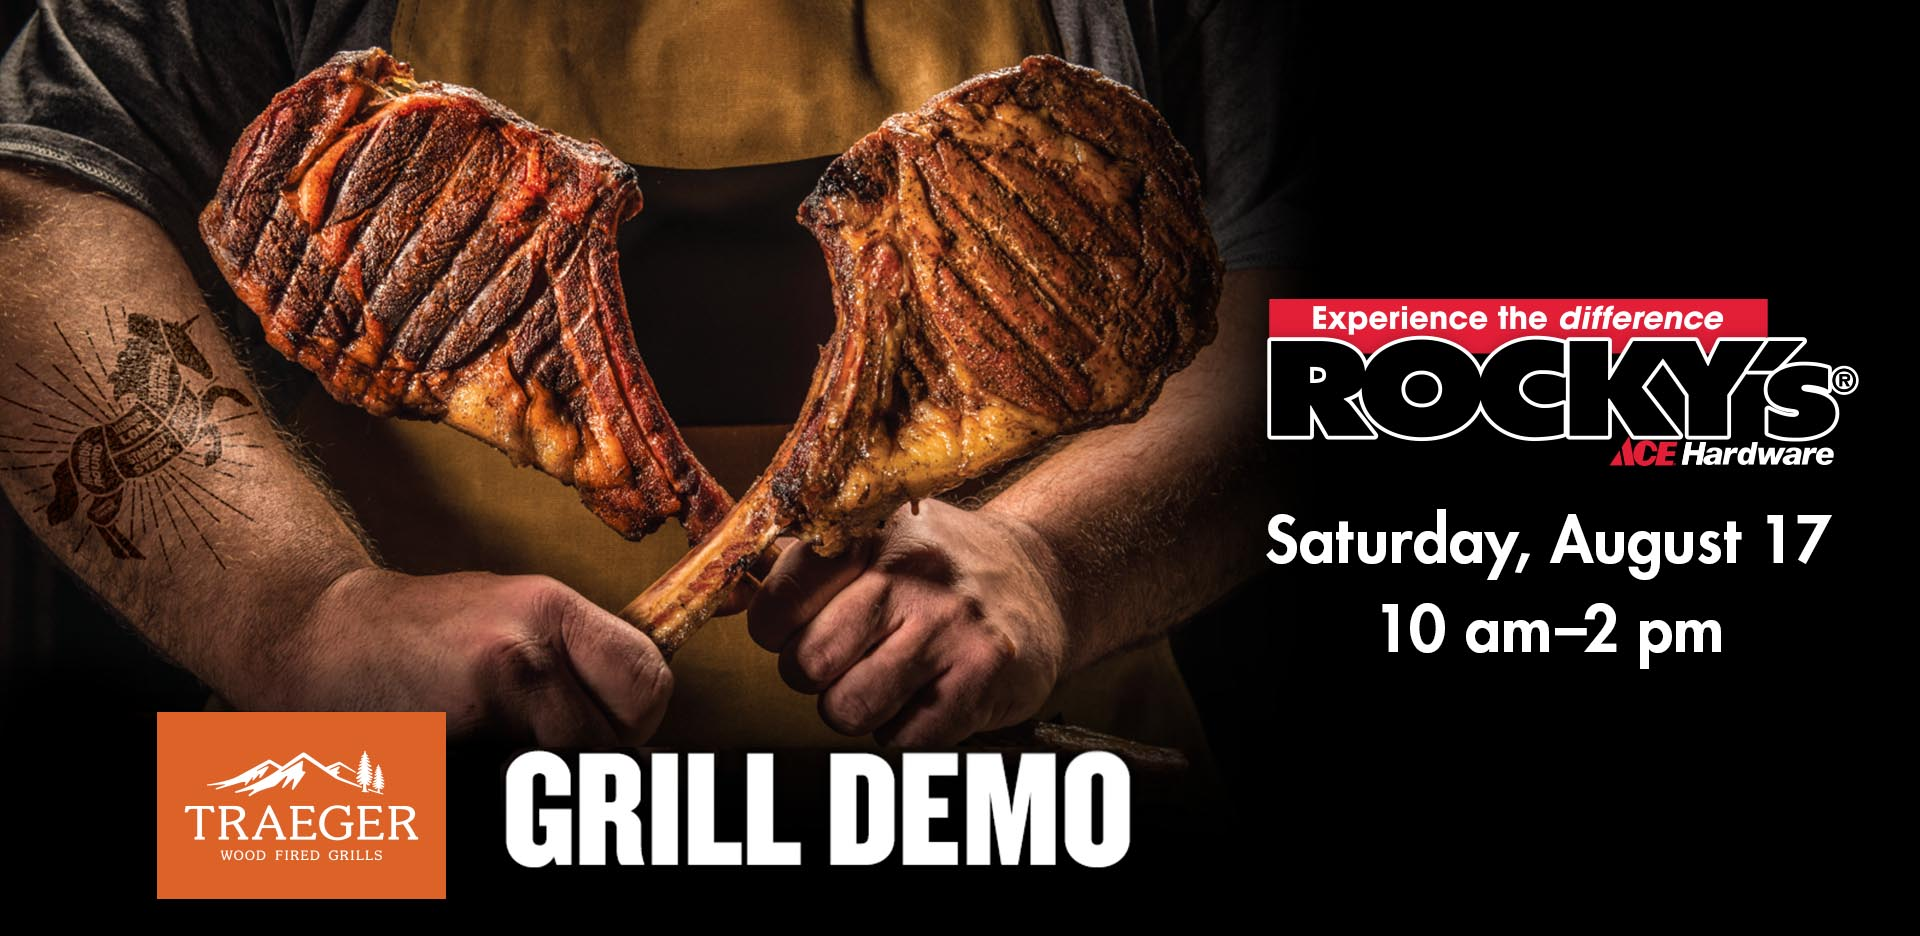 Trager Grill Demo at Rocky's Ace Hardware